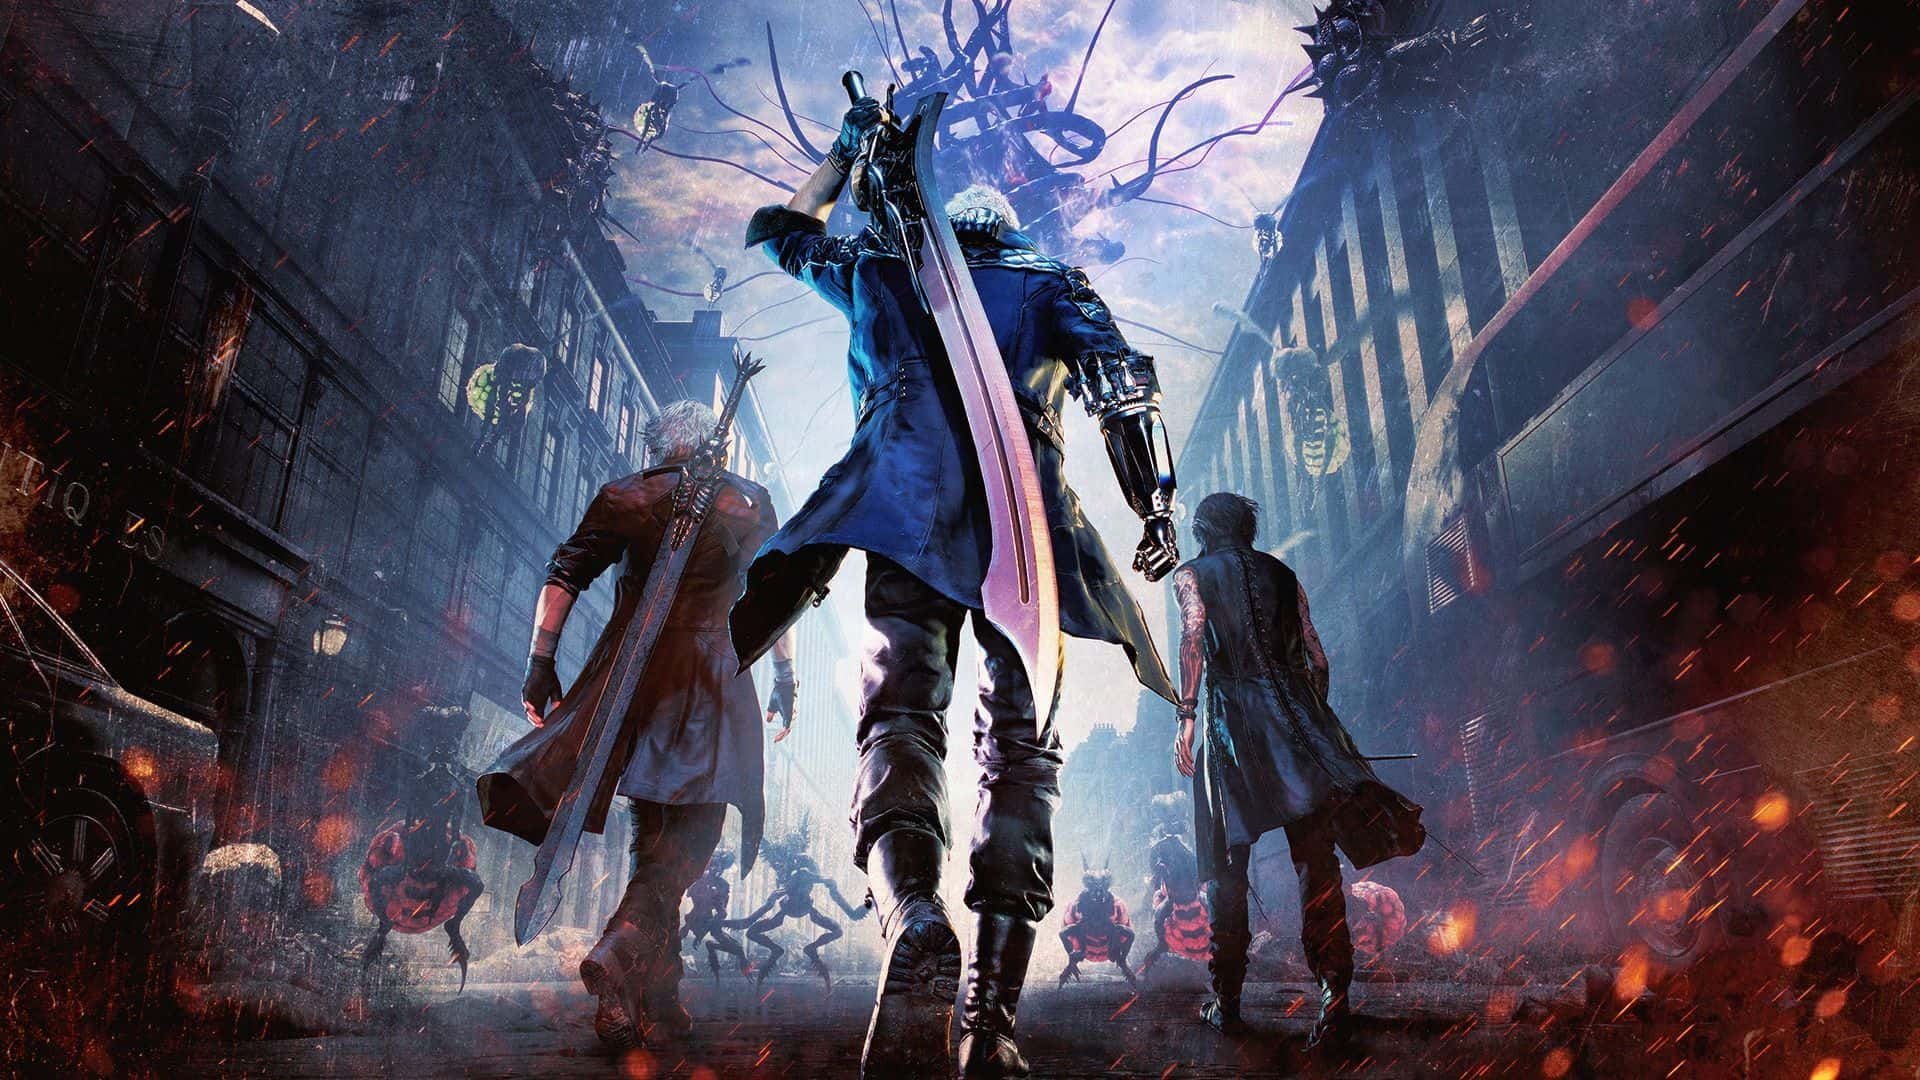 amazon Devil May Cry 5 reviews Devil May Cry 5 on amazon newest Devil May Cry 5 prices of Devil May Cry 5 Devil May Cry 5 deals best deals on Devil May Cry 5 buying a Devil May Cry 5 lastest Devil May Cry 5 what is a Devil May Cry 5 Devil May Cry 5 at amazon where to buy Devil May Cry 5 where can i you get a Devil May Cry 5 online purchase Devil May Cry 5 Devil May Cry 5 sale off Devil May Cry 5 discount cheapest Devil May Cry 5 Devil May Cry 5 for sale Devil May Cry 5 products Devil May Cry 5 tutorial Devil May Cry 5 specification Devil May Cry 5 features Devil May Cry 5 test Devil May Cry 5 series Devil May Cry 5 service manual Devil May Cry 5 instructions Devil May Cry 5 accessories Devil May Cry 5 downloads Devil May Cry 5 publisher Devil May Cry 5 programs Devil May Cry 5 license Devil May Cry 5 applications Devil May Cry 5 installation Devil May Cry 5 best settings all weapons in devil may cry 5 amazon devil may cry 5 all characters in devil may cry 5 amd rewards devil may cry 5 actor devil may cry 5 adam driver devil may cry 5 amazon devil may cry 5 ps4 artemis devil may cry 5 actors devil may cry 5 a new job devil may cry 5 baixar devil may cry 5 pc best buy devil may cry 5 big w devil may cry 5 bande annonce devil may cry 5 behind the voice actors devil may cry 5 buy devil may cry 5 pc bayonetta 3 vs devil may cry 5 bagas31 devil may cry 5 best skills devil may cry 5 bug devil may cry 5 cốt truyện devil may cry 5 cấu hình devil may cry 5 crack devil may cry 5 crackwatch devil may cry 5 capcom devil may cry 5 cerberus devil may cry 5 codex devil may cry 5 cheat engine devil may cry 5 can i run devil may cry 5 cheats devil may cry 5 pc download devil may cry 5 dante devil may cry 5 dmc devil may cry 5 download devil may cry 5 pc demo devil may cry 5 demo devil may cry 5 ps4 dante gameplay devil may cry 5 deluxe edition devil may cry 5 devil breaker devil may cry 5 dante theme devil may cry 5 eb games devil may cry 5 edicion coleccionista devil may cry 5 edicion especial devil may cry 5 esrb devil may cry 5 exceed devil may cry 5 e3 2018 devil may cry 5 embargo devil may cry 5 eurogamer devil may cry 5 edition devil may cry 5 edycja kolekcjonerska devil may cry 5 foto devil may cry 5 fecha devil may cry 5 filtraciones devil may cry 5 free download game pc devil may cry 5 devil may cry 5 fitgirl file crack devil may cry 5 final devil may cry 5 free download devil may cry 5 trainer file save devil may cry 5 famitsu devil may cry 5 guia devil may cry 5 game devil may cry 5 griffon devil may cry 5 g2a devil may cry 5 gameplanet devil may cry 5 gamestop devil may cry 5 collector's edition gry online devil may cry 5 gamespot devil may cry 5 gamescom 2018 devil may cry 5 gameplay devil may cry 5 hack devil may cry 5 how to install devil may cry 5 hideaki itsuno devil may cry 5 hideki kamiya devil may cry 5 hdr devil may cry 5 how to crack devil may cry 5 how to skip cutscenes in devil may cry 5 how to download devil may cry 5 for android how many chapters in devil may cry 5 how to play devil may cry 5 demo ign devil may cry 5 igg devil may cry 5 is devil may cry 5 on ps4 is lucia in devil may cry 5 is devil may cry 5 co op info devil may cry 5 is devil may cry 5 coming out is devil may cry 5 cracked is vergil in devil may cry 5 is devil may cry 5 4k jb hi fi devil may cry 5 jalan cerita devil may cry 5 jogo devil may cry 5 jvc devil may cry 5 jagatplay devil may cry 5 juego devil may cry 5 jim sterling devil may cry 5 jaket devil may cry 5 jadwal rilis devil may cry 5 jokergame devil may cry 5 karakter devil may cry 5 kotaku devil may cry 5 kisah devil may cry 5 karakter baru devil may cry 5 kapan devil may cry 5 rilis kotobukiya devil may cry 5 kingdom hearts 3 vs devil may cry 5 kyrie devil may cry 5 kamiya devil may cry 5 kat devil may cry 5 lanzamiento devil may cry 5 lançamento devil may cry 5 leclerc devil may cry 5 lady devil may cry 5 legacy devil may cry 5 lyrics legacy devil may cry 5 latest devil may cry 5 news lucia devil may cry 5 lady devil may cry 5 wallpaper lenticular edition devil may cry 5 metacritic devil may cry 5 mod devil may cry 5 minimum system requirements for devil may cry 5 mission 3 devil may cry 5 microtransactions devil may cry 5 mission secret devil may cry 5 missions devil may cry 5 mission 2 devil may cry 5 mission 8 devil may cry 5 mission 4 devil may cry 5 nero devil may cry 5 new devil may cry 5 nico devil may cry 5 novel devil may cry 5 devil may cry 5 nero's battle theme nero devil may cry 5 wallpaper nintendo switch devil may cry 5 nero devil may cry 5 age new devil may cry 5 trailer nero coat devil may cry 5 ocean of games devil may cry 5 ost devil may cry 5 online multiplayer devil may cry 5 ost devil may cry 5 mp3 old dante devil may cry 5 online devil may cry 5 ocean of game devil may cry 5 ost devil may cry 5 download ost devil may cry 5 trailer story of devil may cry 5 personajes devil may cry 5 ps4 devil may cry 5 ps3 devil may cry 5 playstation store devil may cry 5 playstation devil may cry 5 ps4 pro devil may cry 5 ps4 devil may cry 5 gameplay devil may cry 5 reloaded ppsspp devil may cry 5 pc game devil may cry 5 download quien es v devil may cry 5 quantas missoes tem devil may cry 5 qui est v devil may cry 5 quem é v devil may cry 5 quando esce devil may cry 5 que dia lança devil may cry 5 que es devil may cry 5 devil may cry 5 quotes devil may cry 5 the quick and the dead trophies devil may cry 5 para que consolas saldra requisitos devil may cry 5 reddit devil may cry 5 devil may cry 5 và resident evil 2 reuben langdon devil may cry 5 resetera devil may cry 5 royal guard devil may cry 5 release devil may cry 5 repack devil may cry 5 release date devil may cry 5 review devil may cry 5 steam devil may cry 5 save devil may cry 5 save game devil may cry 5 skidrow devil may cry 5 site devil may cry 5 sparda devil may cry 5 secret mission devil may cry 5 sam2k8 devil may cry 5 save file devil may cry 5 trainer devil may cry 5 tvtropes devil may cry 5 trailer devil may cry 5 trish devil may cry 5 the devil may cry 5 the story of devil may cry 5 tips for devil may cry 5 third character devil may cry 5 theme song devil may cry 5 twitter devil may cry 5 uscita devil may cry 5 update devil may cry 5 urizen devil may cry 5 unboxing devil may cry 5 ultrawide devil may cry 5 unlockables devil may cry 5 devil may cry 5 urizen devil may cry 5 ultrawide ultra limited edition devil may cry 5 unable to initialize steam api devil may cry 5 v devil may cry 5 v devil may cry 5 la ai vergil devil may cry 5 vk devil may cry 5 v theme devil may cry 5 v character devil may cry 5 vergil face devil may cry 5 vergil devil may cry 5 v vergil devil may cry 5 leak video game devil may cry 5 wallpaper devil may cry 5 wallpaper engine devil may cry 5 who is v devil may cry 5 who are the characters in devil may cry 5 when was devil may cry 5 announced who is the third character in devil may cry 5 when is devil may cry 5 release date when is devil may cry 5 coming out walkthrough devil may cry 5 wallpapers devil may cry 5 xbox store devil may cry 5 xbox one x devil may cry 5 xmd.dll devil may cry 5 download x3daudio1_7.dll devil may cry 5 xinput1_3.dll is missing devil may cry 5 xmd.dll devil may cry 5 xinput1_3.dll devil may cry 5 x360ce devil may cry 5 xbox one devil may cry 5 xbox 360 devil may cry 5 youtube devil may cry 5 trailer ymmv devil may cry 5 youtube devil may cry 5 devil trigger youtube devil may cry 5 ost youtube devil may cry 5 soundtrack youtube devil may cry 5 trailer song you tube devil may cry 5 youtube devil may cry 5 final boss youtube devil may cry 5 gameplay yamato devil may cry 5 zagrajmy w devil may cry 5 zoomg devil may cry 5 zangado devil may cry 5 devil may cry 5 ne zaman çıkacak devil may cry 5 deluxe edition zazix devil may cry 5 zensiert devil may cry 5 zensur devil may cry 5 zmart devil may cry 5 zap devil may cry 5 full game compressed zip password đánh giá devil may cry 5 đánh giá game devil may cry 5 15 minutes of devil may cry 5 gameplay 15 minutes of devil may cry 5 devil may cry 5 gtx 1060 devil may cry 5 wallpaper hd 1080p devil may cry 5 wallpaper 1920x1080 devil may cry 5 mission 14 devil may cry 5 wallpaper 1920x1080 hd devil may cry 5 wallpaper 1366x768 devil may cry 5 mission 18 devil may cry 5 gtx 1070 2ch devil may cry 5 devil may cry 5 2018 download devil may cry 5 2018 devil may cry 5 2019 devil may cry 5 mission 20 devil may cry 5 trailer 2018 devil may cry 5 2017 devil may cry 5 2013 system requirements devil may cry 5 2018 pc devil may cry 5 - tgs 2018 trailer 3rd character devil may cry 5 3840x2400 wallpaper devil may cry 5 3dm devil may cry 5 3 characters in devil may cry 5 devil may cry 5 xbox 360 rgh devil may cry 5 devil trigger 320kbps devil may cry 5 cheats xbox 360 devil may cry 5 3440x1440 devil may cry 5 gtx 1060 3gb devil may cry 5 xbox 360 download devil may cry 5 wallpapers 4k devil may cry 5 4k 60fps devil may cry 5 4share devil may cry 5 4k devil may cry 5 trailer 4k devil may cry 5 intel hd 4000 devil may cry 5 screenshots 4k playstation 4 devil may cry 5 demo god of war 4 vs devil may cry 5 d3dcompiler_43.dll devil may cry 5 dmc 5 devil may cry 5 secret mission 5 devil may cry 5 mission 5 devil may cry 5 devil may cry 5 devil may cry 5 devil may cry 5 highly compressed 500mb devil may cry 5 trailer 5 devil may cry 5 60 fps devil may cry 5 ultimate edition only costs $8 600 devil may cry 5 6000 devil may cry 5 64 bit crack devil may cry 5 ps4 60 fps devil may cry 5 gt 610 devil may cry 5 gameplay 60fps devil may cry 5 trailer 60fps devil may cry 5 64 bit devil may cry 5 7000 euros devil may cry 5 75 devil may cry 5 7000 devil may cry 5 bt.709 devil may cry 5 gt 710 devil may cry 5 gtx 770 devil may cry 5 gtx 760 devil may cry 5 gtx 750ti devil may cry 5 750ti devil may cry 5 gt 730 8000 devil may cry 5 devil may cry 5 8000 dollars devil may cry 5 8600 devil may cry 5 dante abilities 85 devil may cry 5 8k wallpaper devil may cry 5 8000 special edition devil may cry 5 mission 8 blue orb devil may cry 5 chapter 8 9gag devil may cry 5 devil may cry 5 gtx 970 devil may cry 5 9pm release devil may cry 5 960m devil may cry 5 gtx 960 devil may cry 5 gt 940mx devil may cry 5 940m devil may cry 5 920m devil may cry 5 gtx 950m devil may cry 5 940mx devil may cry 5 devil may cry 5 all cutscenes devil may cry 5 nero arm devil may cry 5 actors devil may cry 5 voice actors devil may cry 5 for android devil may cry 5 all characters devil may cry 5 all weapons devil may cry 5 amazon devil may cry 5 live action cutscenes devil bringer devil may cry 5 devil may cry 5 gameplay devil may cry 5 trailer devil may cry 5 ps4 devils may cry 5 review devil may cry 5 pc devil may cry 5 before the nightmare devil may cry 5 final boss devil may cry 5 full crack devil may cry 5 characters devil may cry 5 crackwatch devil may cry 5 download devil may cry 5 pc download devil may cry 5 dante devil may cry 5 demo devil may cry 5 deluxe edition devil may cry 5 ending devil may cry 5 e3 2018 devil may cry 5 collector's edition devil may cry 5 download for pc devil may cry 5 final trailer devil may cry 5 for pc devil may cry 5 for ps4 devil may cry 5 for xbox one release date for devil may cry 5 devil may cry 5 game devil may cry 5 save game devil may cry 5 google drive devil may cry 5 gamespot devil may cry 5 ocean of games devil may cry 5 save game location devil may cry 5 pc game download devil may cry 5 girl devil may cry 5 cấu hình devil may cry 5 hd wallpaper devil may cry 5 faust hat devil may cry 5 ign devil may cry 5 who is v devil may cry 5 imdb devil may cry 5 who is urizen characters in devil may cry 5 microtransactions in devil may cry 5 devil may cry 5 java game download devil may cry 5 jb hi fi devil may cry 5 jvc devil may cry 5 dante jacket jalan devil may cry 3 mission 5 devil may cry 5 jagatplay devil may cry 5 collector's edition jacket devil may cry 5 michael jackson devil may cry 5 special edition jacket devil may cry 5 kickass devil may cry 5 key download devil may cry 5 highly compressed kgb devil may cry 5 review devil may cry 5 lady devil may cry 5 leak devil may cry 5 legacy devil may cry 5 logo devil may cry 5 lucia devil may cry 5 vergil leak devil may cry 5 leak reddit devil may cry wiki devil may cry 5 devil may may cry 5 devil may cry 5 metacritic devil may cry 5 mod devil may cry 3 mission 5 devil may cry 5 music devil may cry 5 multiplayer devil may cry 5 microtransactions devil may cry 5 meme devil may cry 5 secret missions devil may cry 5 nero devil may cry 5 nico devil may cry 5 nero devil trigger devil may cry 5 ost devil may cry 5 pre order devil may cry 5 online devil may cry 5 xbox one devil may cry 5 co op devil may cry 5 on pc devil may cry 5 pre order bonus devil may cry 5 demo xbox one devil may cry 5 demo pc devil may cry 5 demo ps4 devil may cry 5 pc requirements devil may cry 5 price devil may cry 5 playable characters devil may cry 5 ps3 devil may cry 5 ps4 pro devil may cry 5 qui est v devil may cry 5 qliphoth devil may cry 5 v quotes devil may cry 5 quien es el protagonista devil may cry 5 system requirements devil may cry 5 reddit devil may cry 5 repack devil may cry 5 skidrow devil may cry 5 steelbook devil may cry 5 soundtrack devil trigger devil may cry 5 mp3 devil trigger devil may cry 5 lyrics devil trigger devil may cry 5 ost devil trigger devil may cry 5 download devil trigger devil may cry 5 devil may cry 5 uscita devil may cry 5 collector's edition uk devil may cry 5 unlockables devil may cry 5 ultimate edition devil may cry 5 unboxing devil may cry 5 urizen is vergil devil may cry 5 how to unlock bloody palace devil may cry 5 unlimited devil trigger devil may cry 5 how to unlock all costumes devil may cry 5 viet hoa devil may cry 5 vergil devil may cry 5 vitale devil may cry 5 pc download crack free full version devil may cry 5 vergil playable download devil may cry 5 pc full version devil may cry 5 pc vs ps4 devil may cry 5 wiki devil may cry 5 wallpaper devil may cry 5 walkthrough devil may cry 5 website devil may cry 5 weapons devil may cry 5 dante weapons devil may cry 5 wallpaper 4k devil may cry 5 wallpapers devil may cry 5 xbox exclusive devil may cry 5 demo xbox devil may cry 5 deluxe edition xbox one devil may cry 5 türkçe yama devil may cry 5 game data preparation is not yet complete devil may cry 5 ymmv can you play devil may cry 5 without playing the others devil may cry 5 zangado devils may cry 5 devil may cry 5 save 100 devil may cry 5 gtx 1050 devil may cry 5 pc save game 100 complete download devil may cry 5 save game 100 devil may cry 5 mission 11 devil may cry 5 tgs 2018 devil may cry 5 2013 tokyo game show 2018 devil may cry 5 devil may cry 5 3rd character devil may cry 5 xbox 360 devil may cry 5 3dm devil may cry 3 mision 5 devil may cry 5 pc 4k devil may cry 4 mision 5 devil may cry 5 secret mission 5 devil may cry 5 mission 5 devil may cry 5 5 devil may cry 5 8000 devil may cry 5 mission 8 s rank devil may cry 5 apk devil may cry 5 devil breaker devil may cry 5 boss devil may cry 5 all bosses devil may cry 5 devil bringer devil may cry 5 all devil breakers devil may cry 5 boss fight devil may cry 5 balrog devil may cry 5 black screen fix devil may cry cry 5 devil may cry 5 cracked devil may cry 5 codex devil may cry 5 coop devil may cry 5 release date devil may cry 5 dlc devil may cry 5 cheat engine devil may cry 5 special edition devil may cry 5 engine devil may cry 5 deluxe edition pre order devil may cry 5 secret ending devil may cry 5 how many missions devil may cry 5 how to switch arms devil may cry 5 hdr devil may cry 5 how to co op devil may cry 5 password.txt (0.05 kb) devil may cry 5 koop devil may cry 5 edycja kolekcjonerska devil may cry 5 demon king devil may cry 5 steam key devil may cry 5 leaked footage devil may cry 5 devil trigger mp3 devil may cry 5 nintendo switch devil may cry 5 new trailer devil may cry 5 nero vs vergil devil may cry 5 news devil may cry 5 ninja theory devil may cry 5 rating devil may cry 5 can i run it devil may cry 5 rebellion devil may cry 5 reaction devil may cry 5 steam devil may cry 5 story devil may cry 5 spoilers devil may cry 5 trainer devil may cry 5 trish devil may cry 5 timeline devil may cry 5 devil trigger devil may cry 5 trailer song devil may cry 5 dante theme devil may cry 5 trophy guide devil may cry 5 ps4 vs xbox one devil may cry 5 xbox exclusive demo devil may cry 5 exclusivo xbox one devil may cry 5 xbox vs ps4 devil may cry 5 xbox live devil may cry 5 collector's edition xbox one dmc devil may cry 5 türkçe yama devil may cry 5 before you buy devil may cry 5 trailer youtube devil may cry 5 review youtube devil may cry 5 yt devil may cry 5 türkçe yama kurulumu devil may cry 5 zoomg devil may cry blue orb mission 5 devil may cry dmc 5 devil may cry dante 5 devil may cry download 5 devil may cry demo 5 devil may cry episode 5 devil may cry episode 5 english dub devil may cry ep 5 bg subs devil may cry episode 5 vostfr devil may cry mission 5 devil may cry nero 5 devil may cry ost 5 devil may cry ps4 5 devil may cry pc 5 devil may cry secret mission 5 devil may cry trailer 5 devil may cry tm 5 devil may cry vergil 5 devil may cry wiki 5 devil may cry xapofx1_5.dll devil may cry 1 secret mission 5 devil may cry 1 blade paragraph 5 devil may cry 1 level 5 devil may cry 1 mission 5 walkthrough devil may cry 1 2 3 4 5 devil may cry 1 mission 5 devil may cry 2 mission 5 devil may cry 2 lucia mission 5 devil may cry 2 dante mission 5 devil may cry 2 part 5 devil may cry 3 level 5 devil may cry 3 ps2 mission 5 devil may cry 3 mission 5 boss devil may cry 3 missão 5 devil may cry 3 missione 5 devil may cry 3 auftrag 5 devil may cry 3 soluce mission 5 devil may cry 3 level 5 walkthrough devil may cry 3 mission 5 vajura devil may cry 4 mission 5 walkthrough devil may cry 4 mission 5 gold orb devil may cry 4 mision secreta 5 devil may cry 4 part 5 devil may cry 4 mission 5 save game download devil may cry 4 mid air buster 5 times devil may cry 4 mission 5 secret mission 3 devil may cry 4 level 5 devil may cry 4 missao 5 devil may cry 5 / dmc 5 devil may cry 5 5000 devil may cry 5 5704 devil may cry 5 all boss devil may cry 5 all collectibles devil may cry 5 all missions devil may cry 5 all costumes devil may cry 5 background devil may cry 5 bị crack devil may cry 5 bloody palace devil may cry 5 buy devil may cry 5 buster arm devil may cry 5 bosses devil may cry 5 crash devil may cry 5 cốt truyện devil may cry 5 cast devil may cry 5 cavaliere devil may cry 5 combo devil may cry 5 đánh giá devil may cry 5 dante devil trigger devil may cry 5 deluxe edition ps4 devil may cry 5 dante vs vergil devil may cry 5 eva devil may cry 5 e3 devil may cry 5 end devil may cry 5 error devil may cry 5 ex provocation devil may cry 5 exceed devil may cry 5 enemies devil may cry 5 editions devil may cry 5 fatal application exit devil may cry 5 font devil may cry 5 full save devil may cry 5 full walkthrough devil may cry 5 fix lag devil may cry 5 full movie devil may cry 5 font download devil may cry 5 gamek devil may cry 5 giá devil may cry 5 game debate devil may cry 5 griffon devil may cry 5 giới thiệu devil may cry 5 huong dan devil may cry 5 has stopped working devil may cry 5 how to unlock vergil devil may cry 5 hidden weapons devil may cry 5 hell and hell devil may cry 5 hidden ending devil may cry 5 ios devil may cry 5 intel hd devil may cry 5 ign review devil may cry 5 igg devil may cry 5 info devil may cry 5 igg games devil may cry 5 iphone wallpaper devil may cry 5 jackpot devil may cry 5 jacket devil may cry 5 japanese devil may cry 5 jump cancel devil may cry 5 japanese voice actors devil may cry 5 jp devil may cry 5 johnny yong bosch devil may cry 5 jacket nero devil may cry 5 japanese trailer devil may cry 5 kyrie devil may cry 5 king cerberus devil may cry 5 keyboard controls devil may cry 5 keyboard devil may cry 5 kalina ann 2 devil may cry 5 kyrie dead devil may cry 5 key art devil may cry 5 kotaku devil may cry 5 live action devil may cry 5 light novel devil may cry 5 low end pc devil may cry 5 linkneverdie devil may cry 5 lady model devil may cry 5 linkneverdie.vip devil may cry 5 mobile devil may cry 5 movie devil may cry 5 mua devil may cry 5 missions devil may cry 5 mods devil may cry 5 mobile wallpaper devil may cry 5 ngày ra mắt devil may cry 5 nhân vật devil may cry 5 nội dung devil may cry 5 novel devil may cry 5 nightmare devil may cry 5 nero's mother devil may cry 5 nico father devil may cry 5 original soundtrack devil may cry 5 ost download devil may cry 5 official website devil may cry 5 open world devil may cry 5 online multiplayer devil may cry 5 opening devil may cry 5 old dante devil may cry 5 or resident evil 2 devil may cry 5 part 1 devil may cry 5 patty devil may cry 5 pc release date devil may cry 5 play as vergil devil may cry 5 pc cấu hình devil may cry 5 pc gameplay devil may cry 5 quadruple s devil may cry 5 question marks devil may cry 5 quicksilver devil may cry 5 questions devil may cry 5 quiz devil may cry 5 qisahn devil may cry 5 quit mission devil may cry 5 qliphoth fruit devil may cry 5 ra mắt devil may cry 5 real life models devil may cry 5 royal guard devil may cry 5 rtx 2080 devil may cry 5 requirements devil may cry 5 switch devil may cry 5 save location devil may cry 5 save file devil may cry 5 theme devil may cry 5 tin tuc devil may cry 5 tinhte devil may cry 5 thông tin devil may cry 5 truc tiep game devil may cry 5 trailer vietsub devil may cry 5 turbo mode devil may cry 5 ultra limited edition devil may cry 5 unlock all devil may cry 5 uncen devil may cry 5 unlock vergil devil may cry 5 ultrawide support devil may cry 5 v devil may cry 5 voz devil may cry 5 v là ai devil may cry 5 vergil face devil may cry 5 vietgame devil may cry 5 vergil gameplay devil may cry 5 vergil dlc devil may cry 5 wallpaper engine devil may cry 5 wikipedia devil may cry 5 wiki nero devil may cry 5 walkthrough part 1 devil may cry 5 xbox devil may cry 5 xatab devil may cry 5 xbox one demo devil may cry 5 xbox one exclusive devil may cry 5 xatab repack devil may cry 5 xbox 360 jtag devil may cry 5 yamato devil may cry 5 youtube devil may cry 5 youtube gameplay devil may cry 5 young dante devil may cry 5 your legacy devil may cry 5 youtube trailer devil may cry 5 yaoi devil may cry 5 you devil may cry 5 zip download devil may cry 5 zero punctuation devil may cry 5 zavvi devil may cry 5 zonaleros devil may cry 5 1 devil may cry 5 mission 1 devil may cry 5 gameplay part 1 devil may cry 5 ps4 part 1 devil may cry 5 1.bölüm devil may cry 5 parte 1 devil may cry 5 trailer 1 devil may cry 5 update 1 download devil may cry 5 2 player devil may cry 5 trailer 2 devil may cry 5 after 2 devil may cry 5 mission 2 devil may cry 5 part 2 devil may cry 5 mission 2 crash devil may cry 5 update 2 devil may cry 5 after dmc 2 devil may cry 5 resident evil 2 devil may cry 5 đã bị crack devil may cry 5 3 playable characters devil may cry 5 mission 3 devil may cry 5 mission 3 secret mission devil may cry 5 mission 3 walkthrough devil may cry 5 chapter 3 devil may cry 5 big w devil may cry 5 1050ti devil may cry 5 100 save game devil may cry 5 1.04 devil may cry 5 1920x1080 devil may cry 5 100 save devil may cry 5 1080ti devil may cry 5 1050 devil may cry 5 1 link devil may cry 5 100 complete save file pc devil may cry 5 2019 fshare devil may cry 5 2019 save game location devil may cry 5 2019 system requirements devil may cry 5 2018 system requirements devil may cry 5 21 9 devil may cry 5 3d models devil may cry 5 30fps devil may cry 5 3 player co op devil may cry 5 3d cover devil may cry 5 3 million devil may cry 5 30 missions devil may cry 5 3 million taunt devil may cry 5 3 campaigns devil may cry 5 4k wallpaper devil may cry 5 4k screenshots devil may cry 5 4k trailer devil may cry 5 4k wallpapers devil may cry 5 4k trailer download devil may cry 5 4k pc devil may cry 5 4k hdr devil may cry 5 mission 5 secret mission devil may cry 5 60fps devil may cry 5 60fps ps4 devil may cry 5 60fps ps4 pro devil may cry 5 60fps pc devil may cry 5 mission 6 devil may cry 5 gtx 660 devil may cry 5 gtx 650 devil may cry 5 720p wallpaper devil may cry 5 mission 7 devil may cry 5 secret missions 7 devil may cry 5 840m devil may cry 5 820m devil may cry 5 85 abilities devil may cry 5 mission 8 devil may cry 5 mission 8 boss devil may cry 5 970 devil may cry 5 980ti devil may cry 5 920mx devil may cry 5 9gag